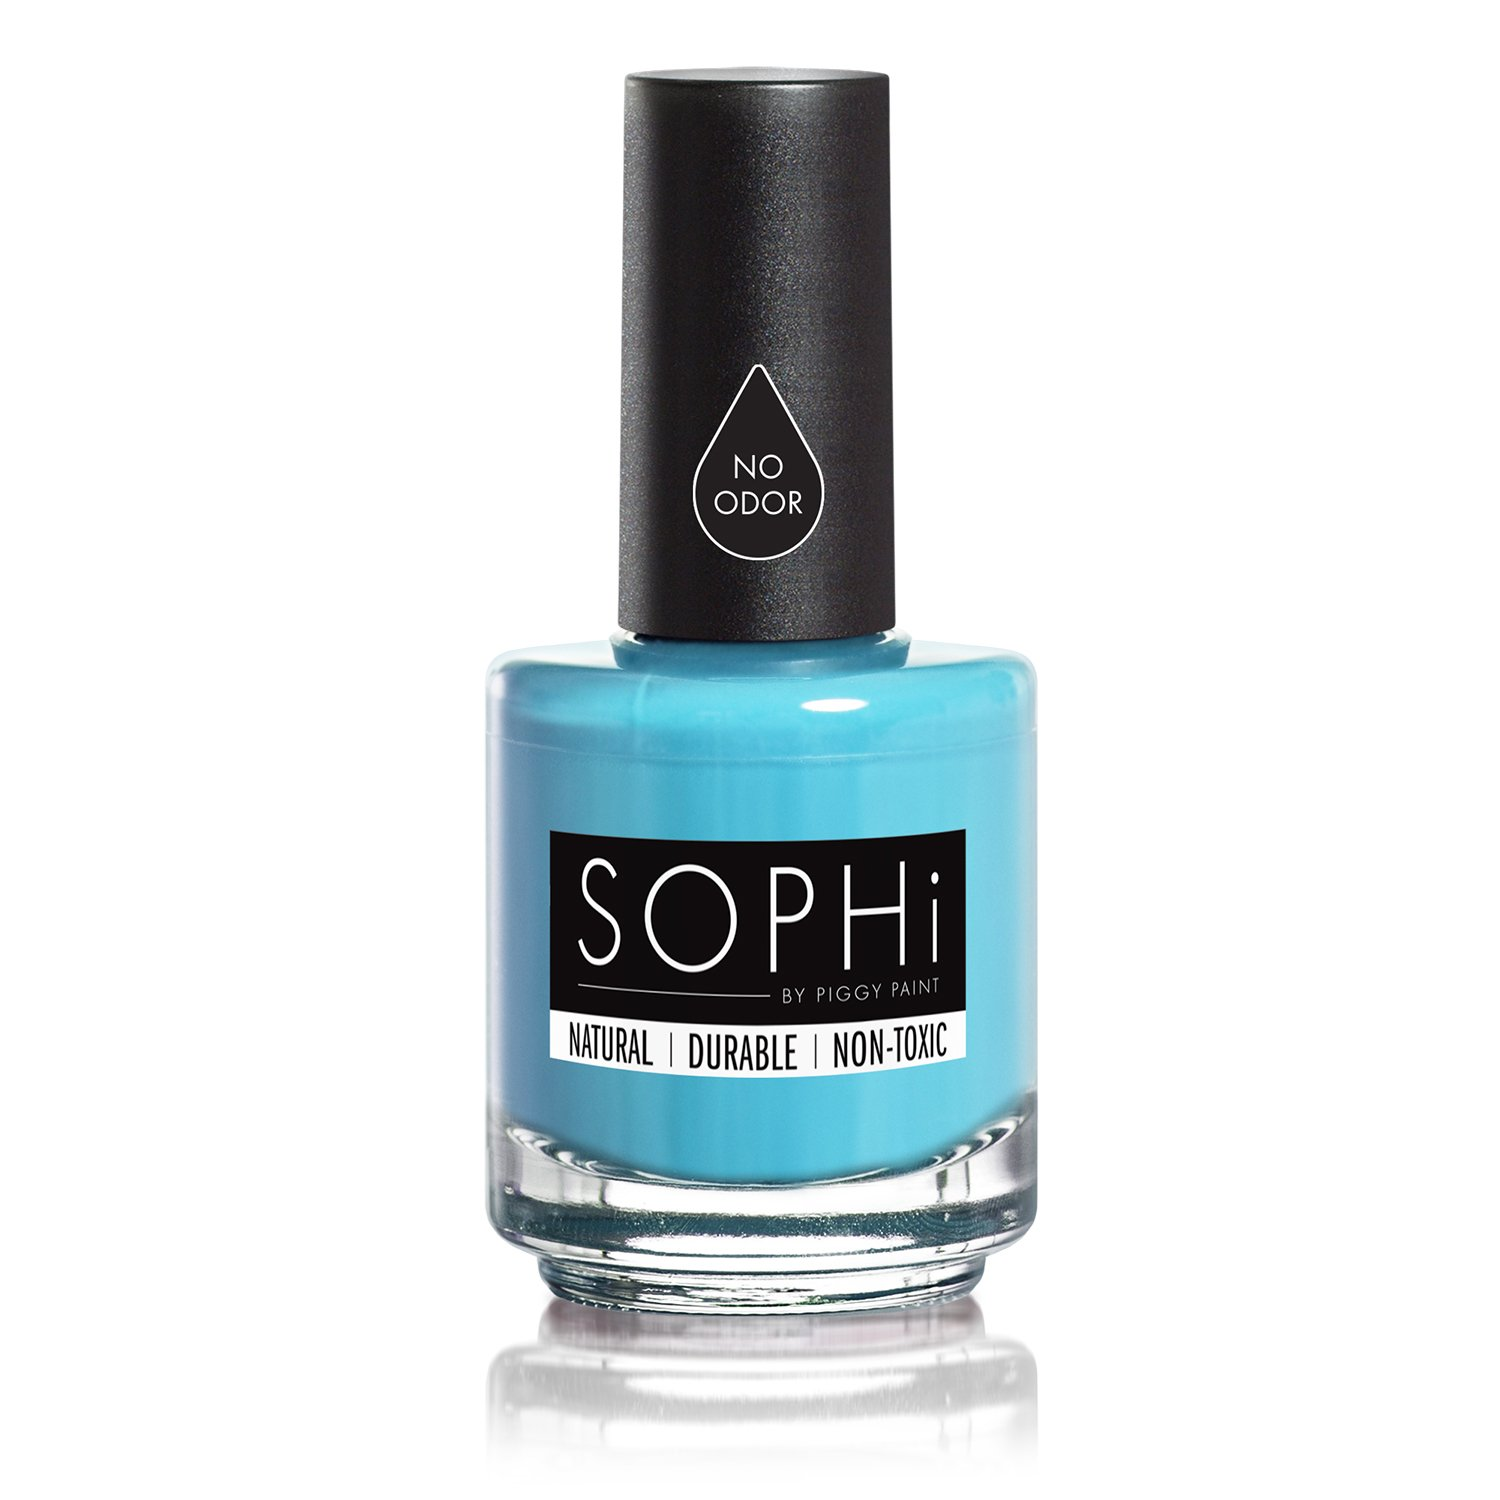 SOPHi Nail Polish, I Love You Dit-Toe, Non Toxic, Safe, Free of All Harsh Chemicals - 0.5 oz